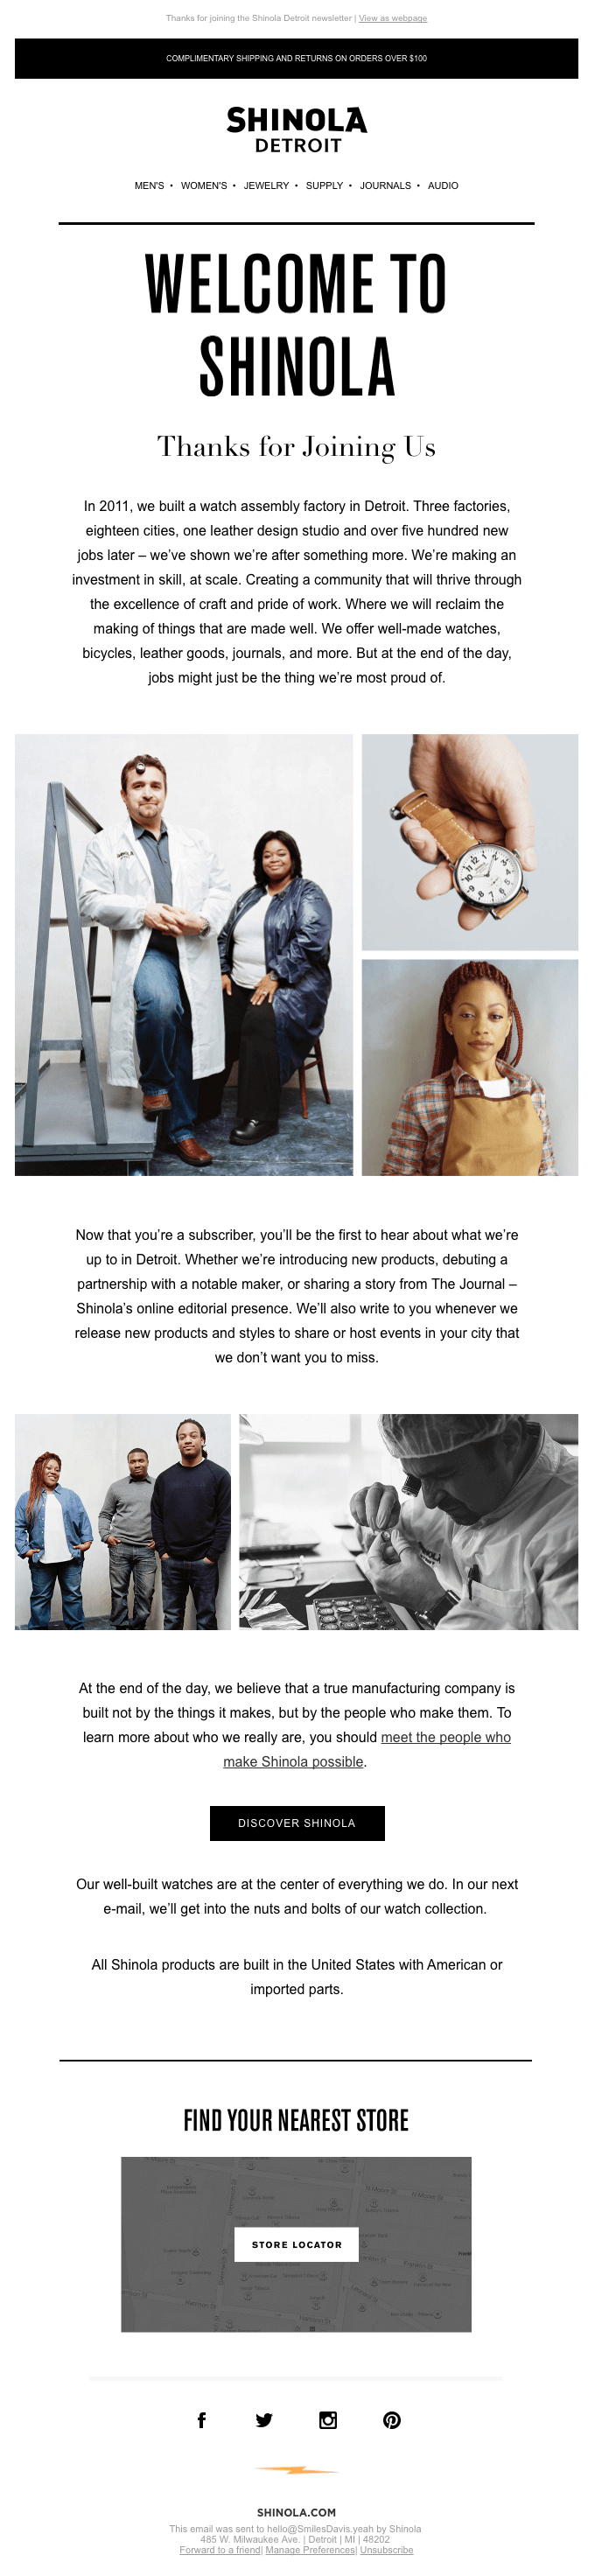 Shinola Detroit's welcome email